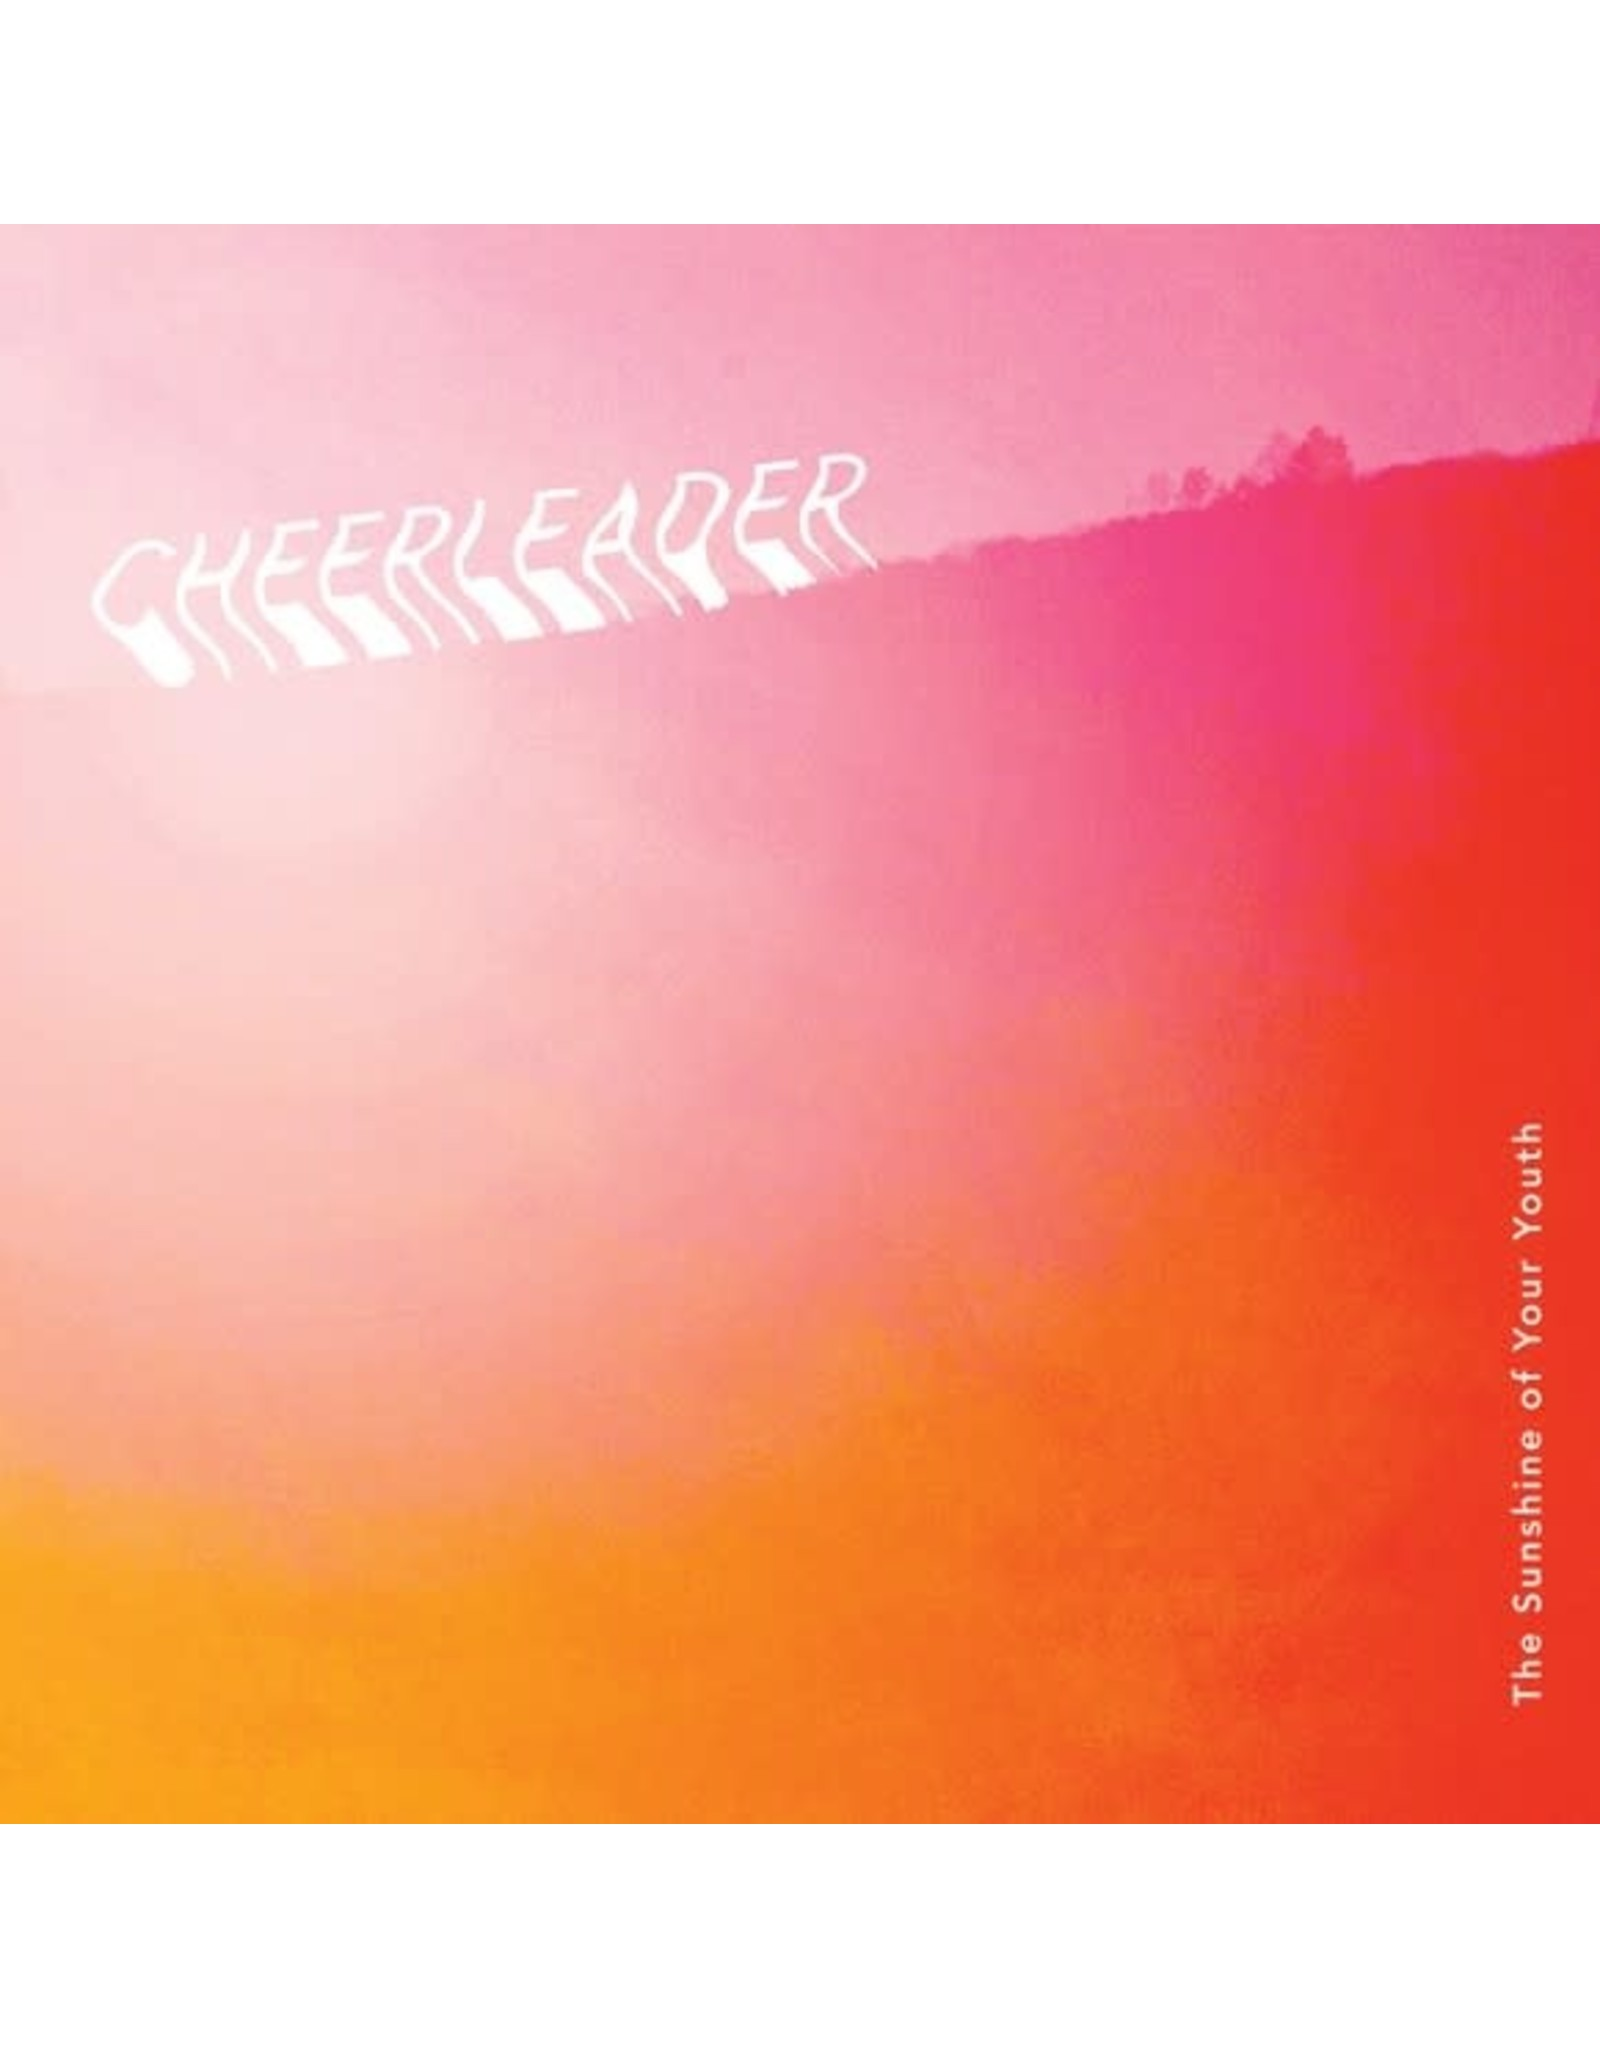 Cheerleader - The Sunshine of Your Youth LP